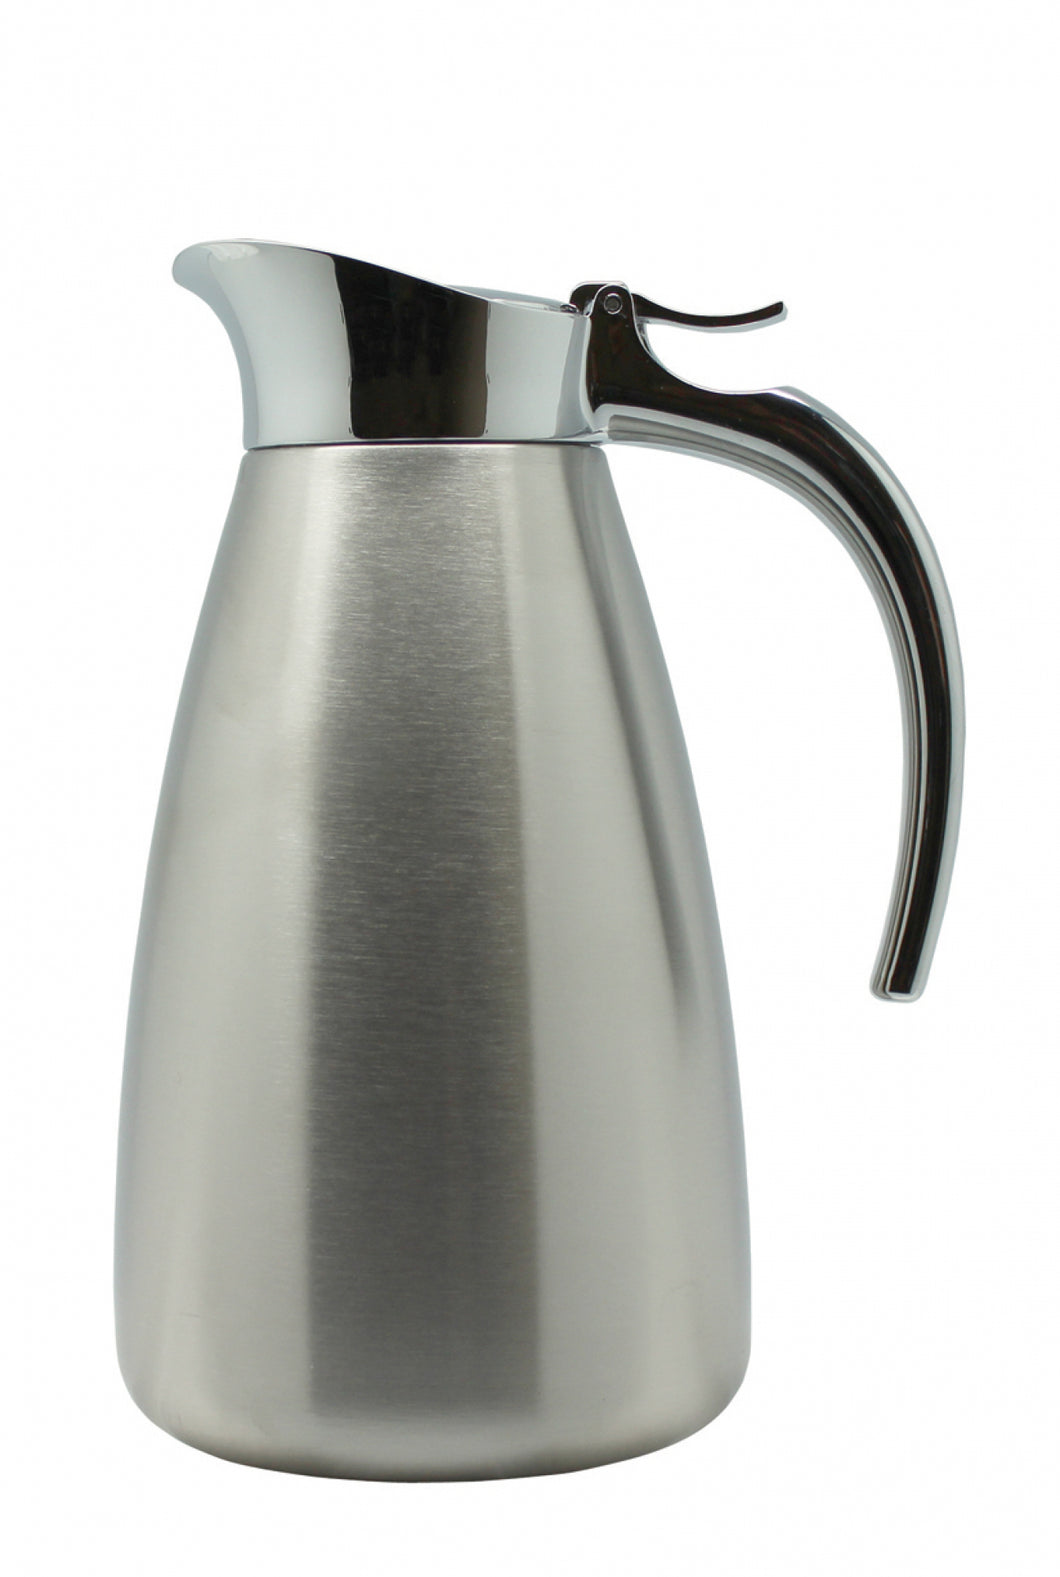 Grunwerg Vacuum 600ml Carafe Server - Satin Finish